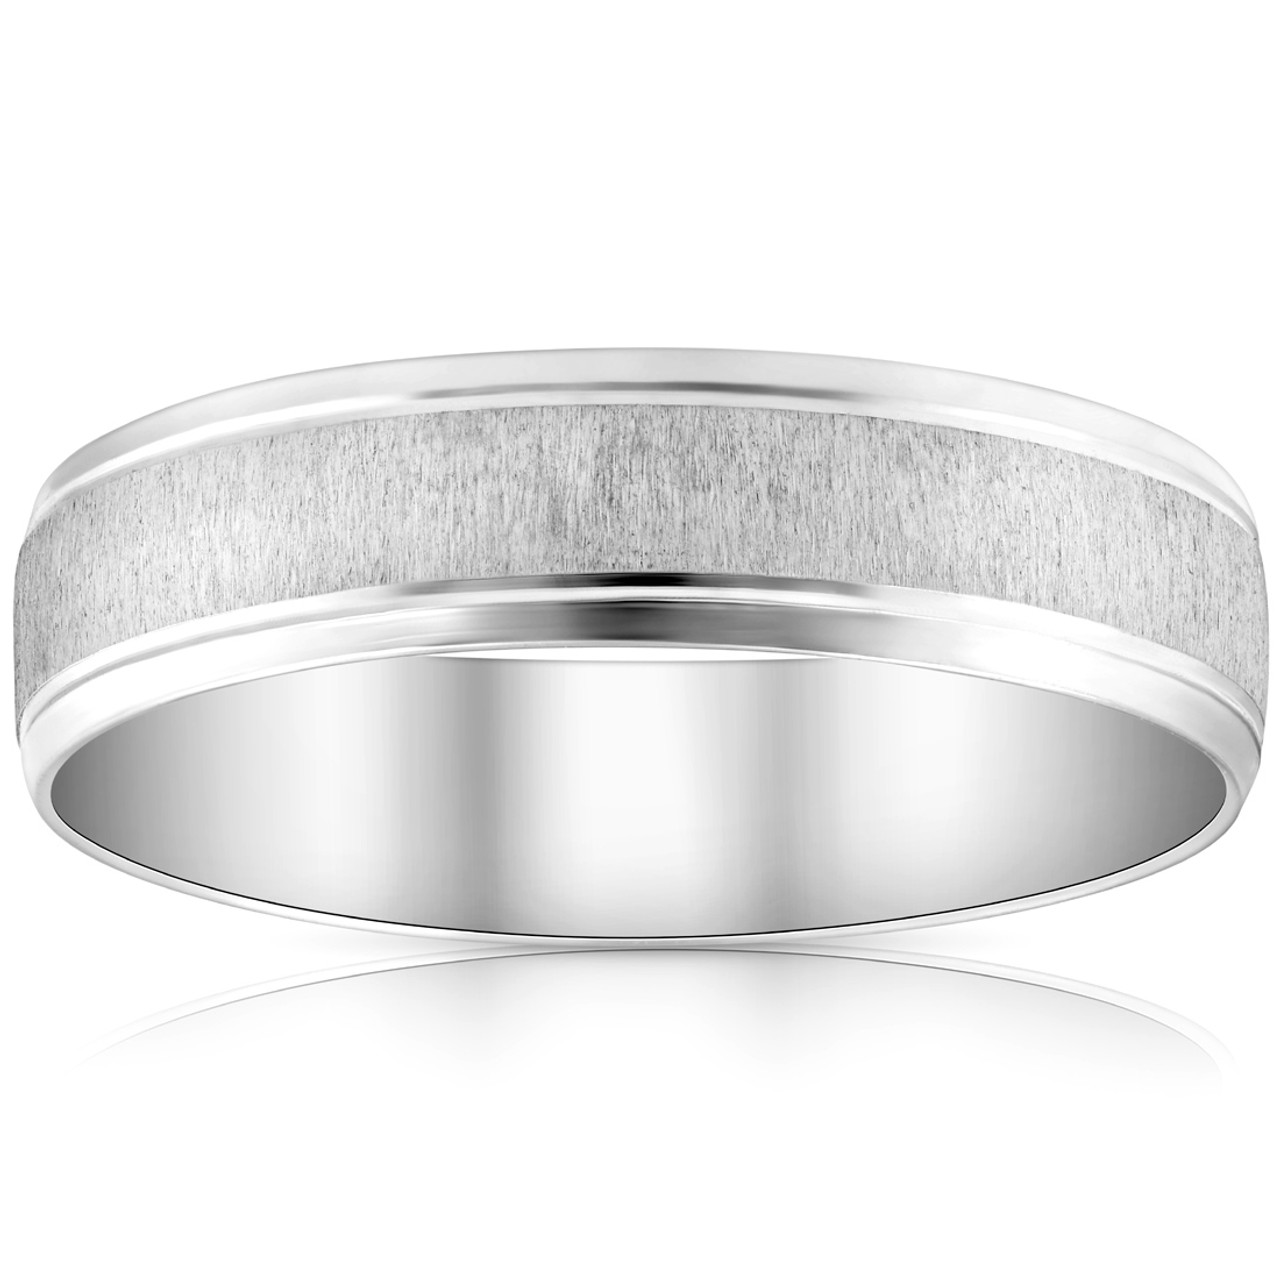 This is a graphic of Mens 34mm 34K White Gold Comfort Fit Wedding Band Ring